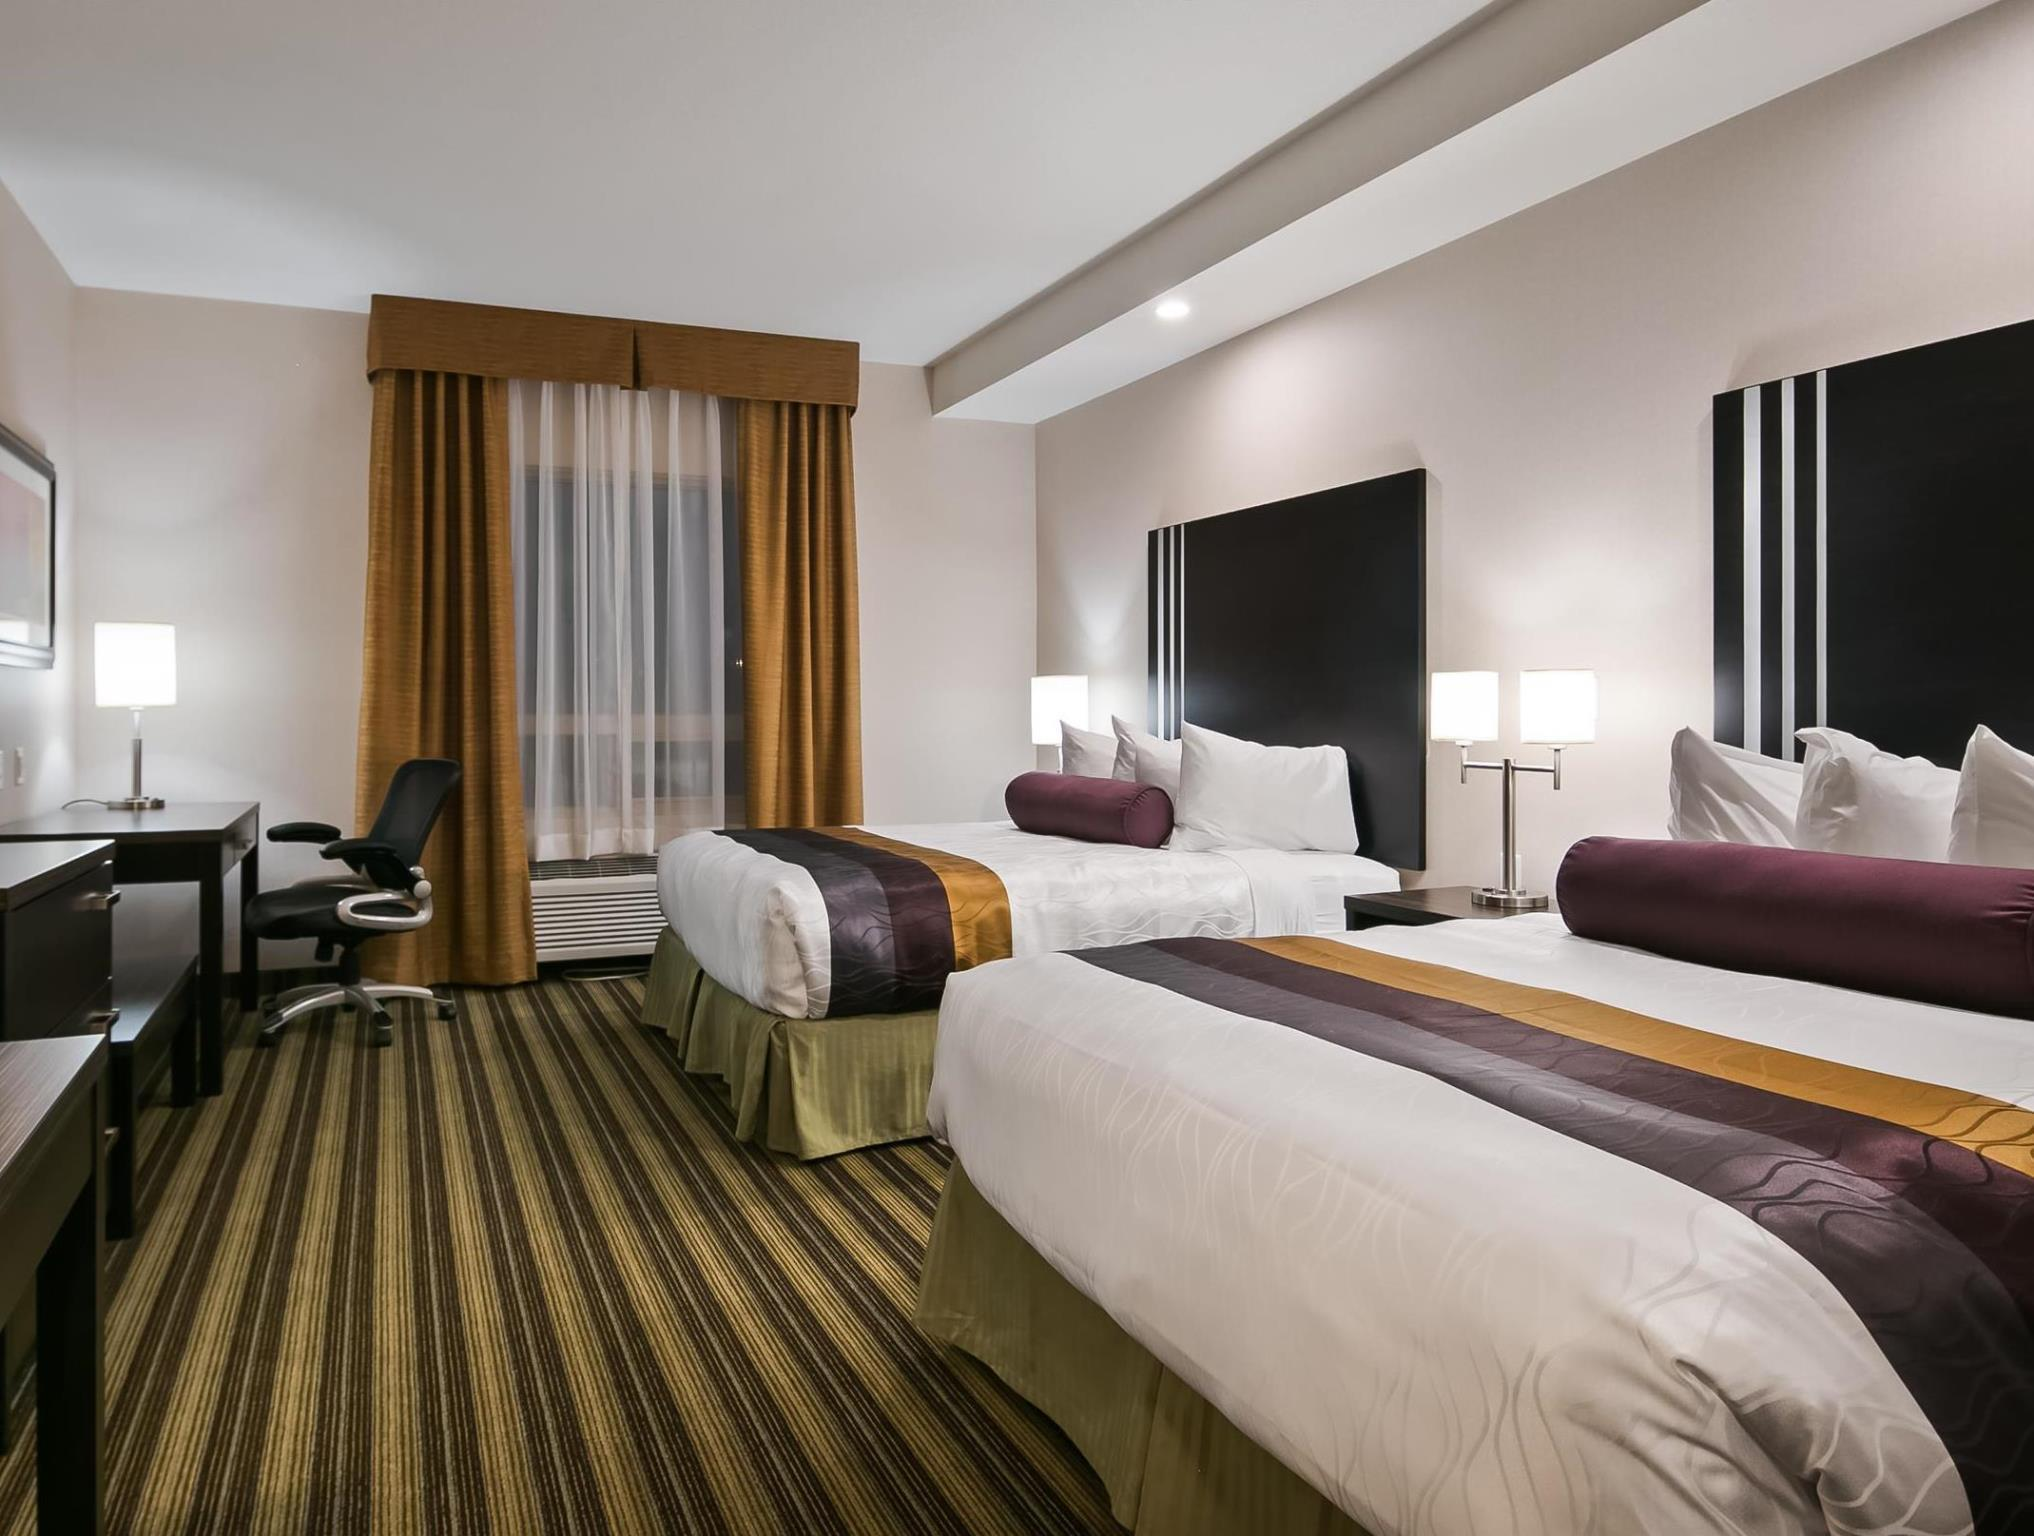 Best Western Plus Drayton Valley All Suites, Division No. 11